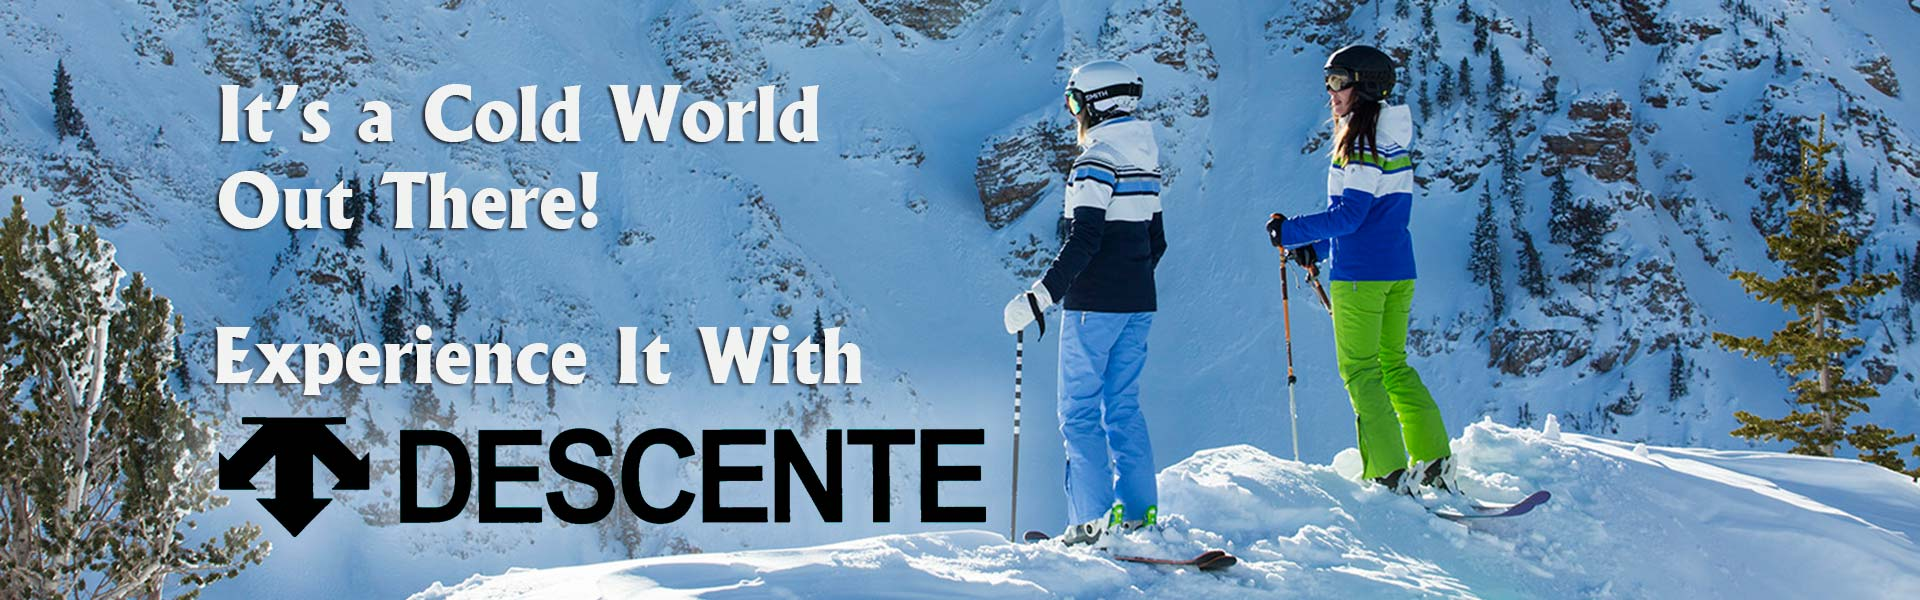 Stay Warm With Descente Ski Clothing